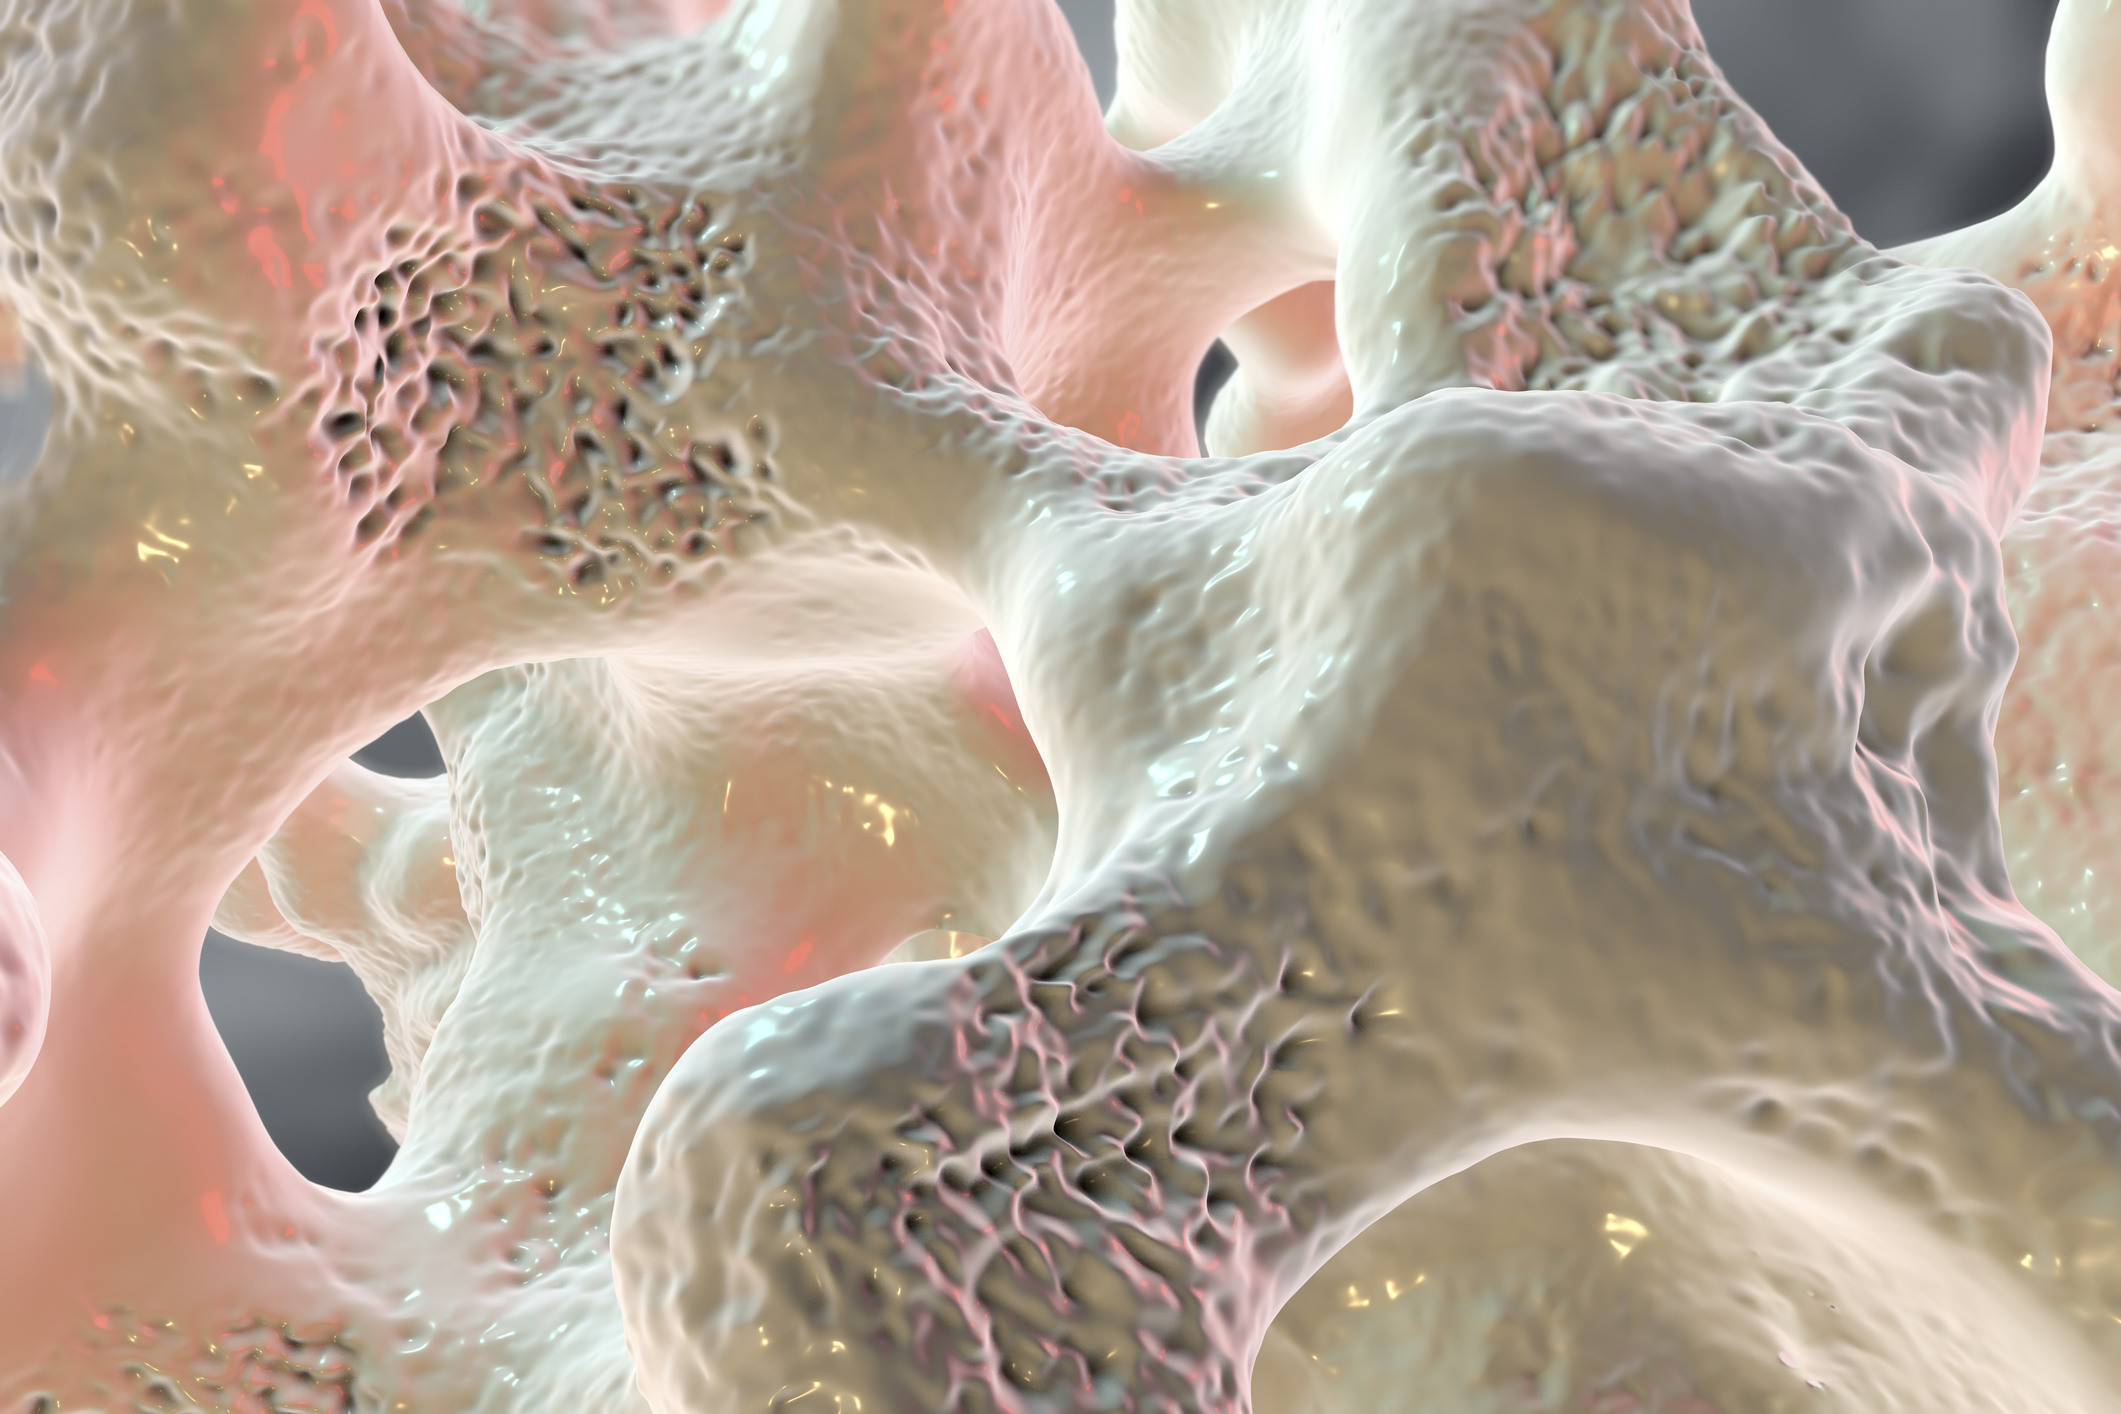 Osteoporosis and Spinal Compression Fractures